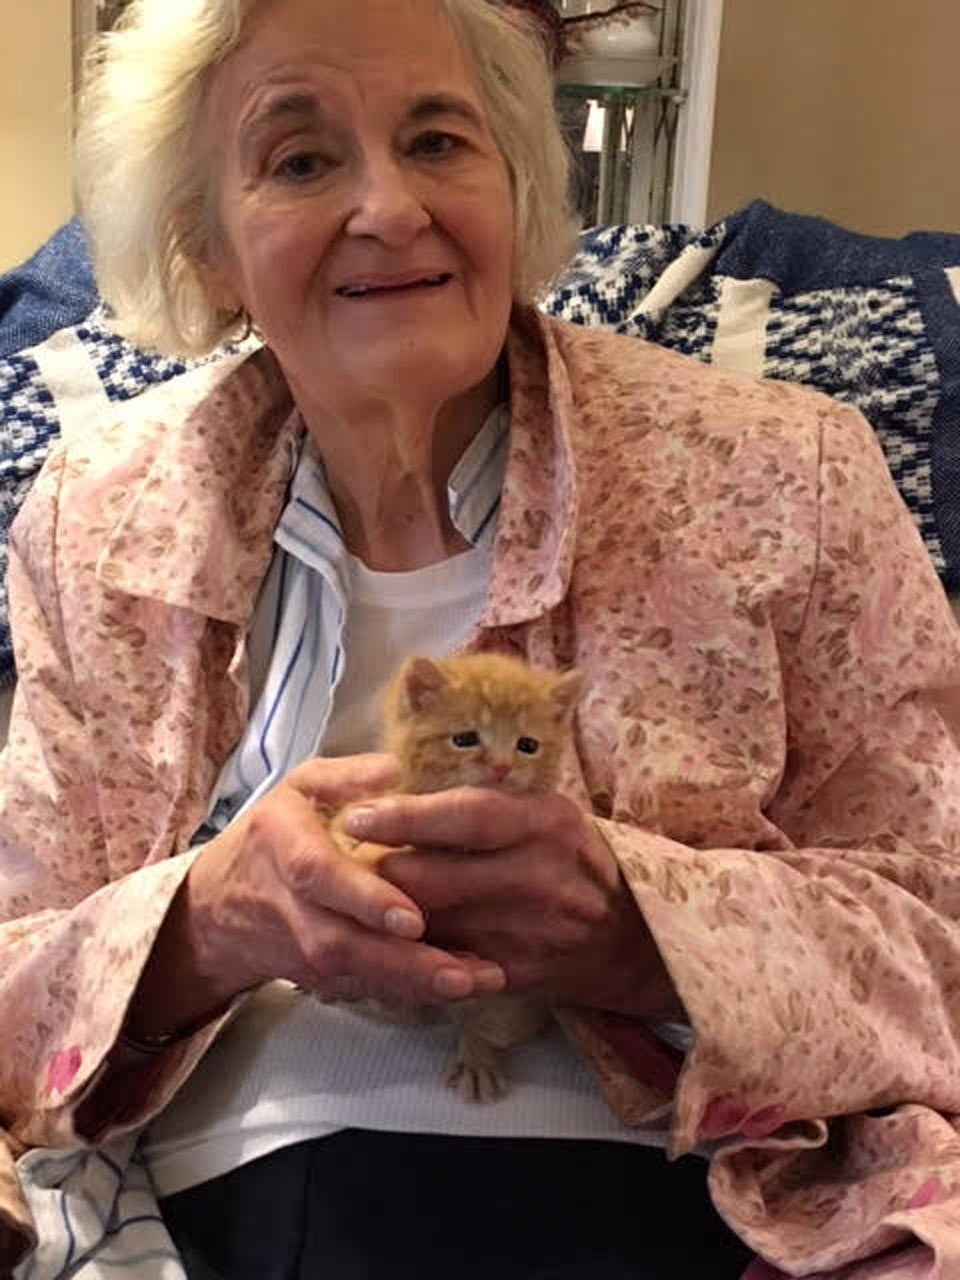 Barbara (Barbie) Homolka with her kitten companion